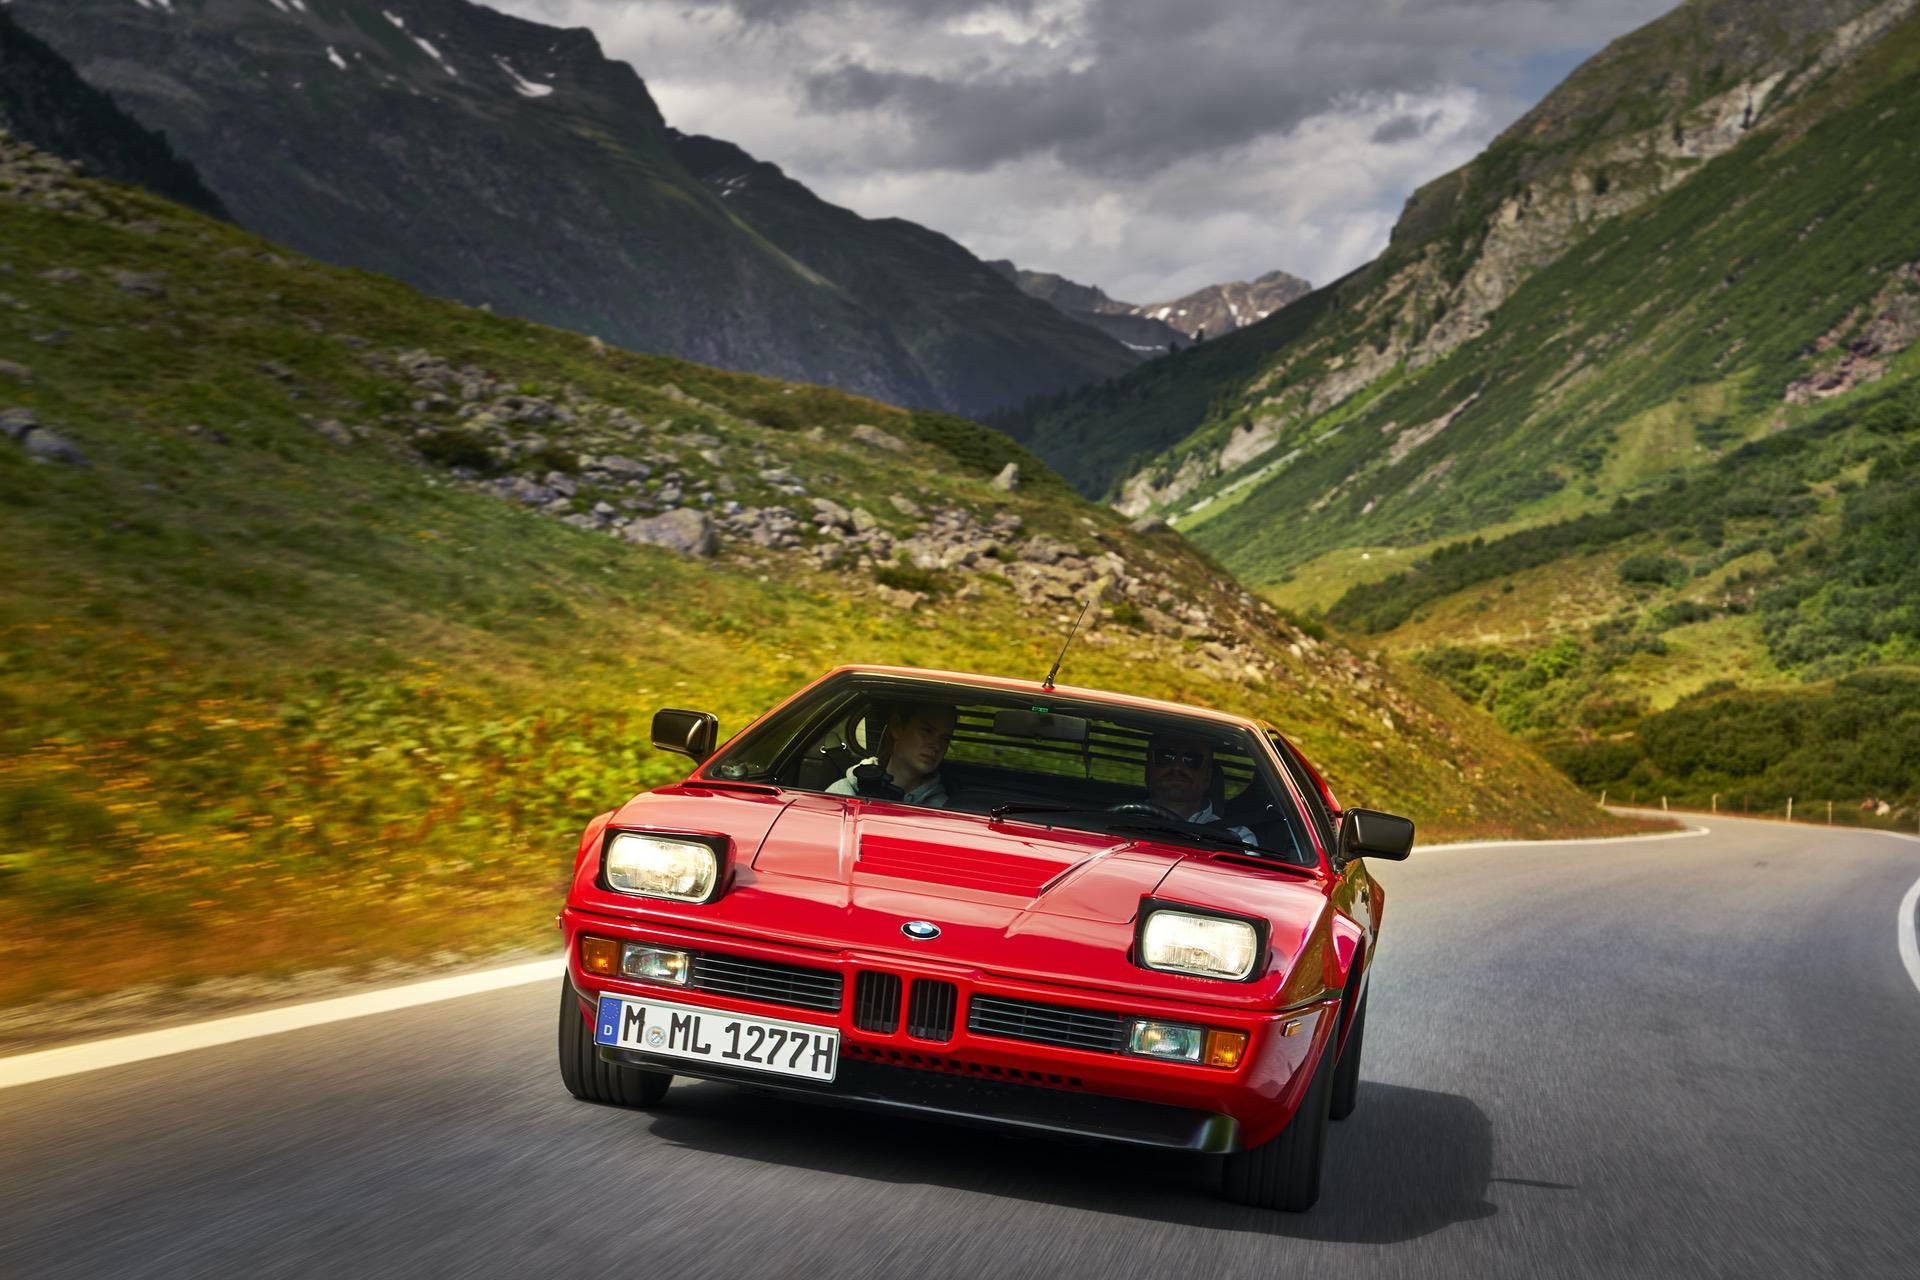 BMW M1 red supercar 11